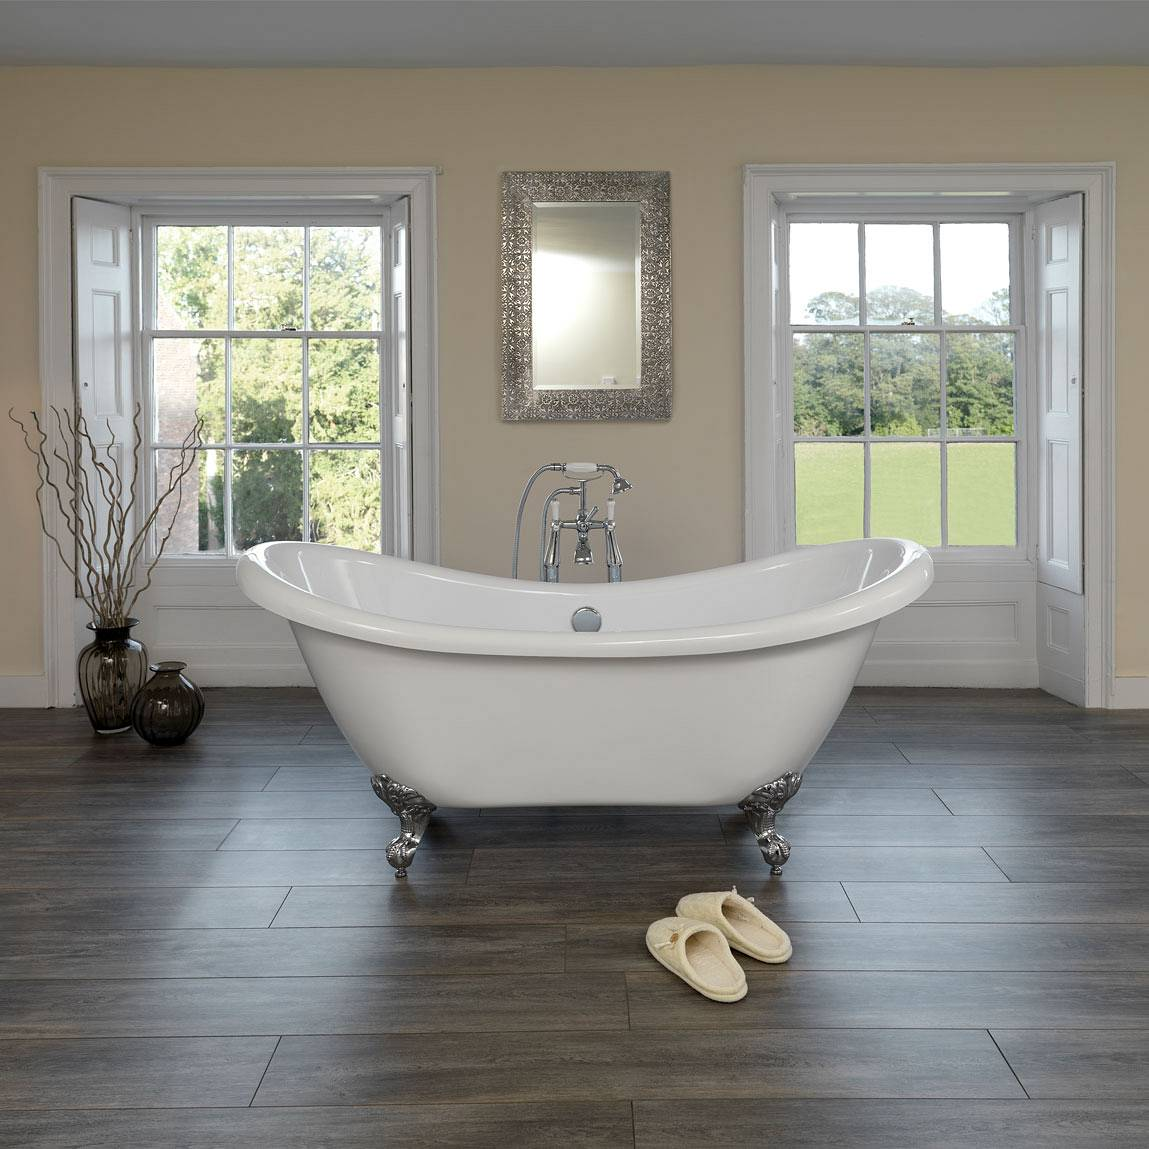 Top two roll top baths for a transitional bathroom design for Great bathroom designs